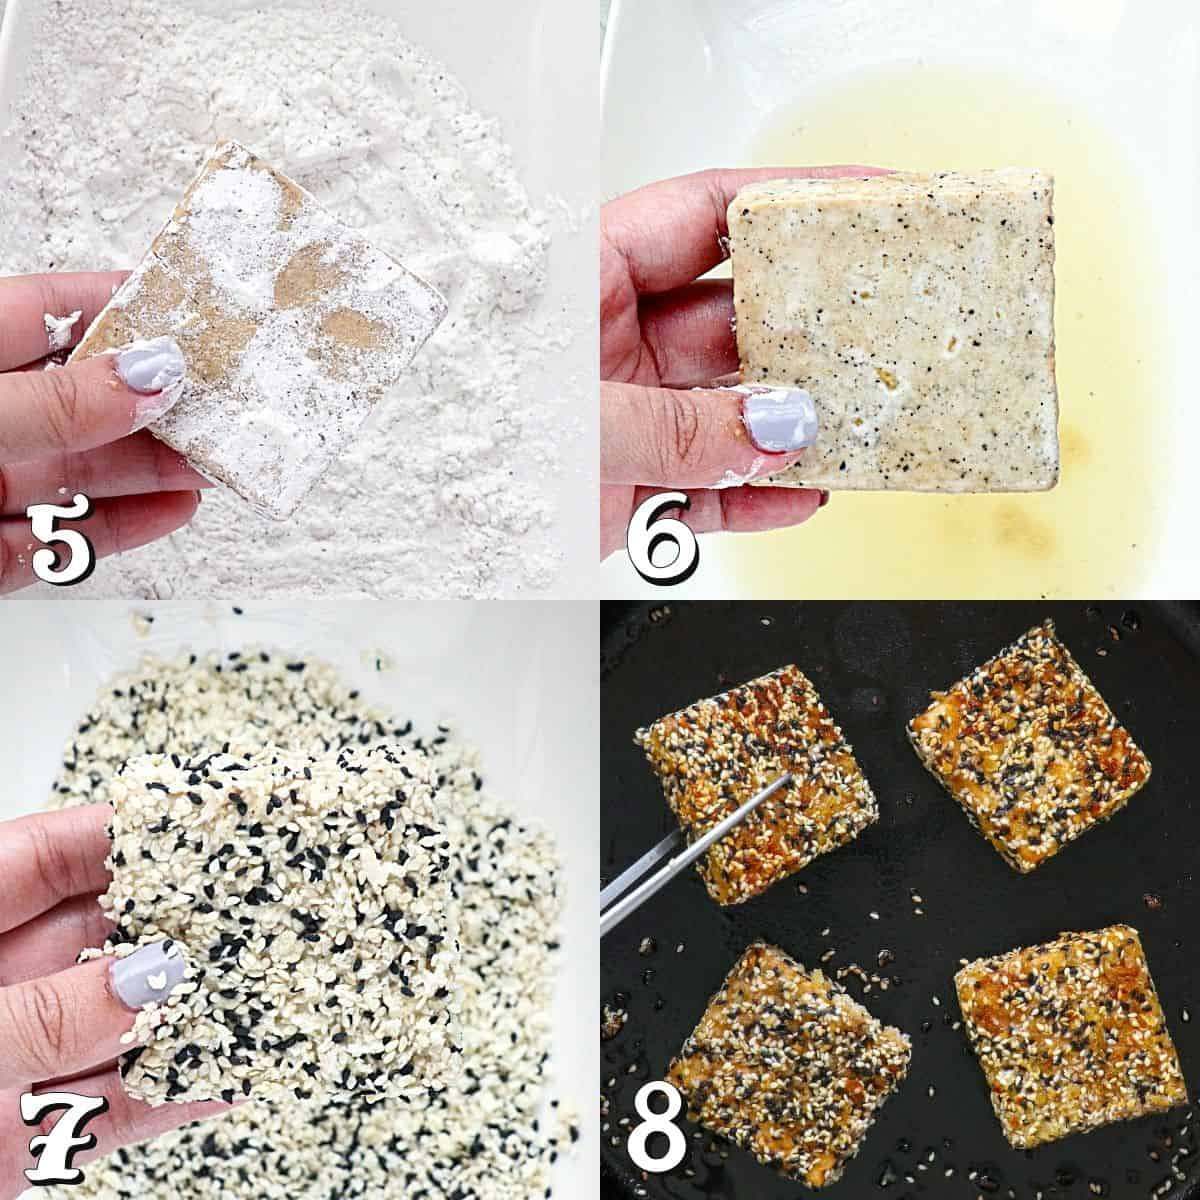 4 process photos of breading and frying tofu.